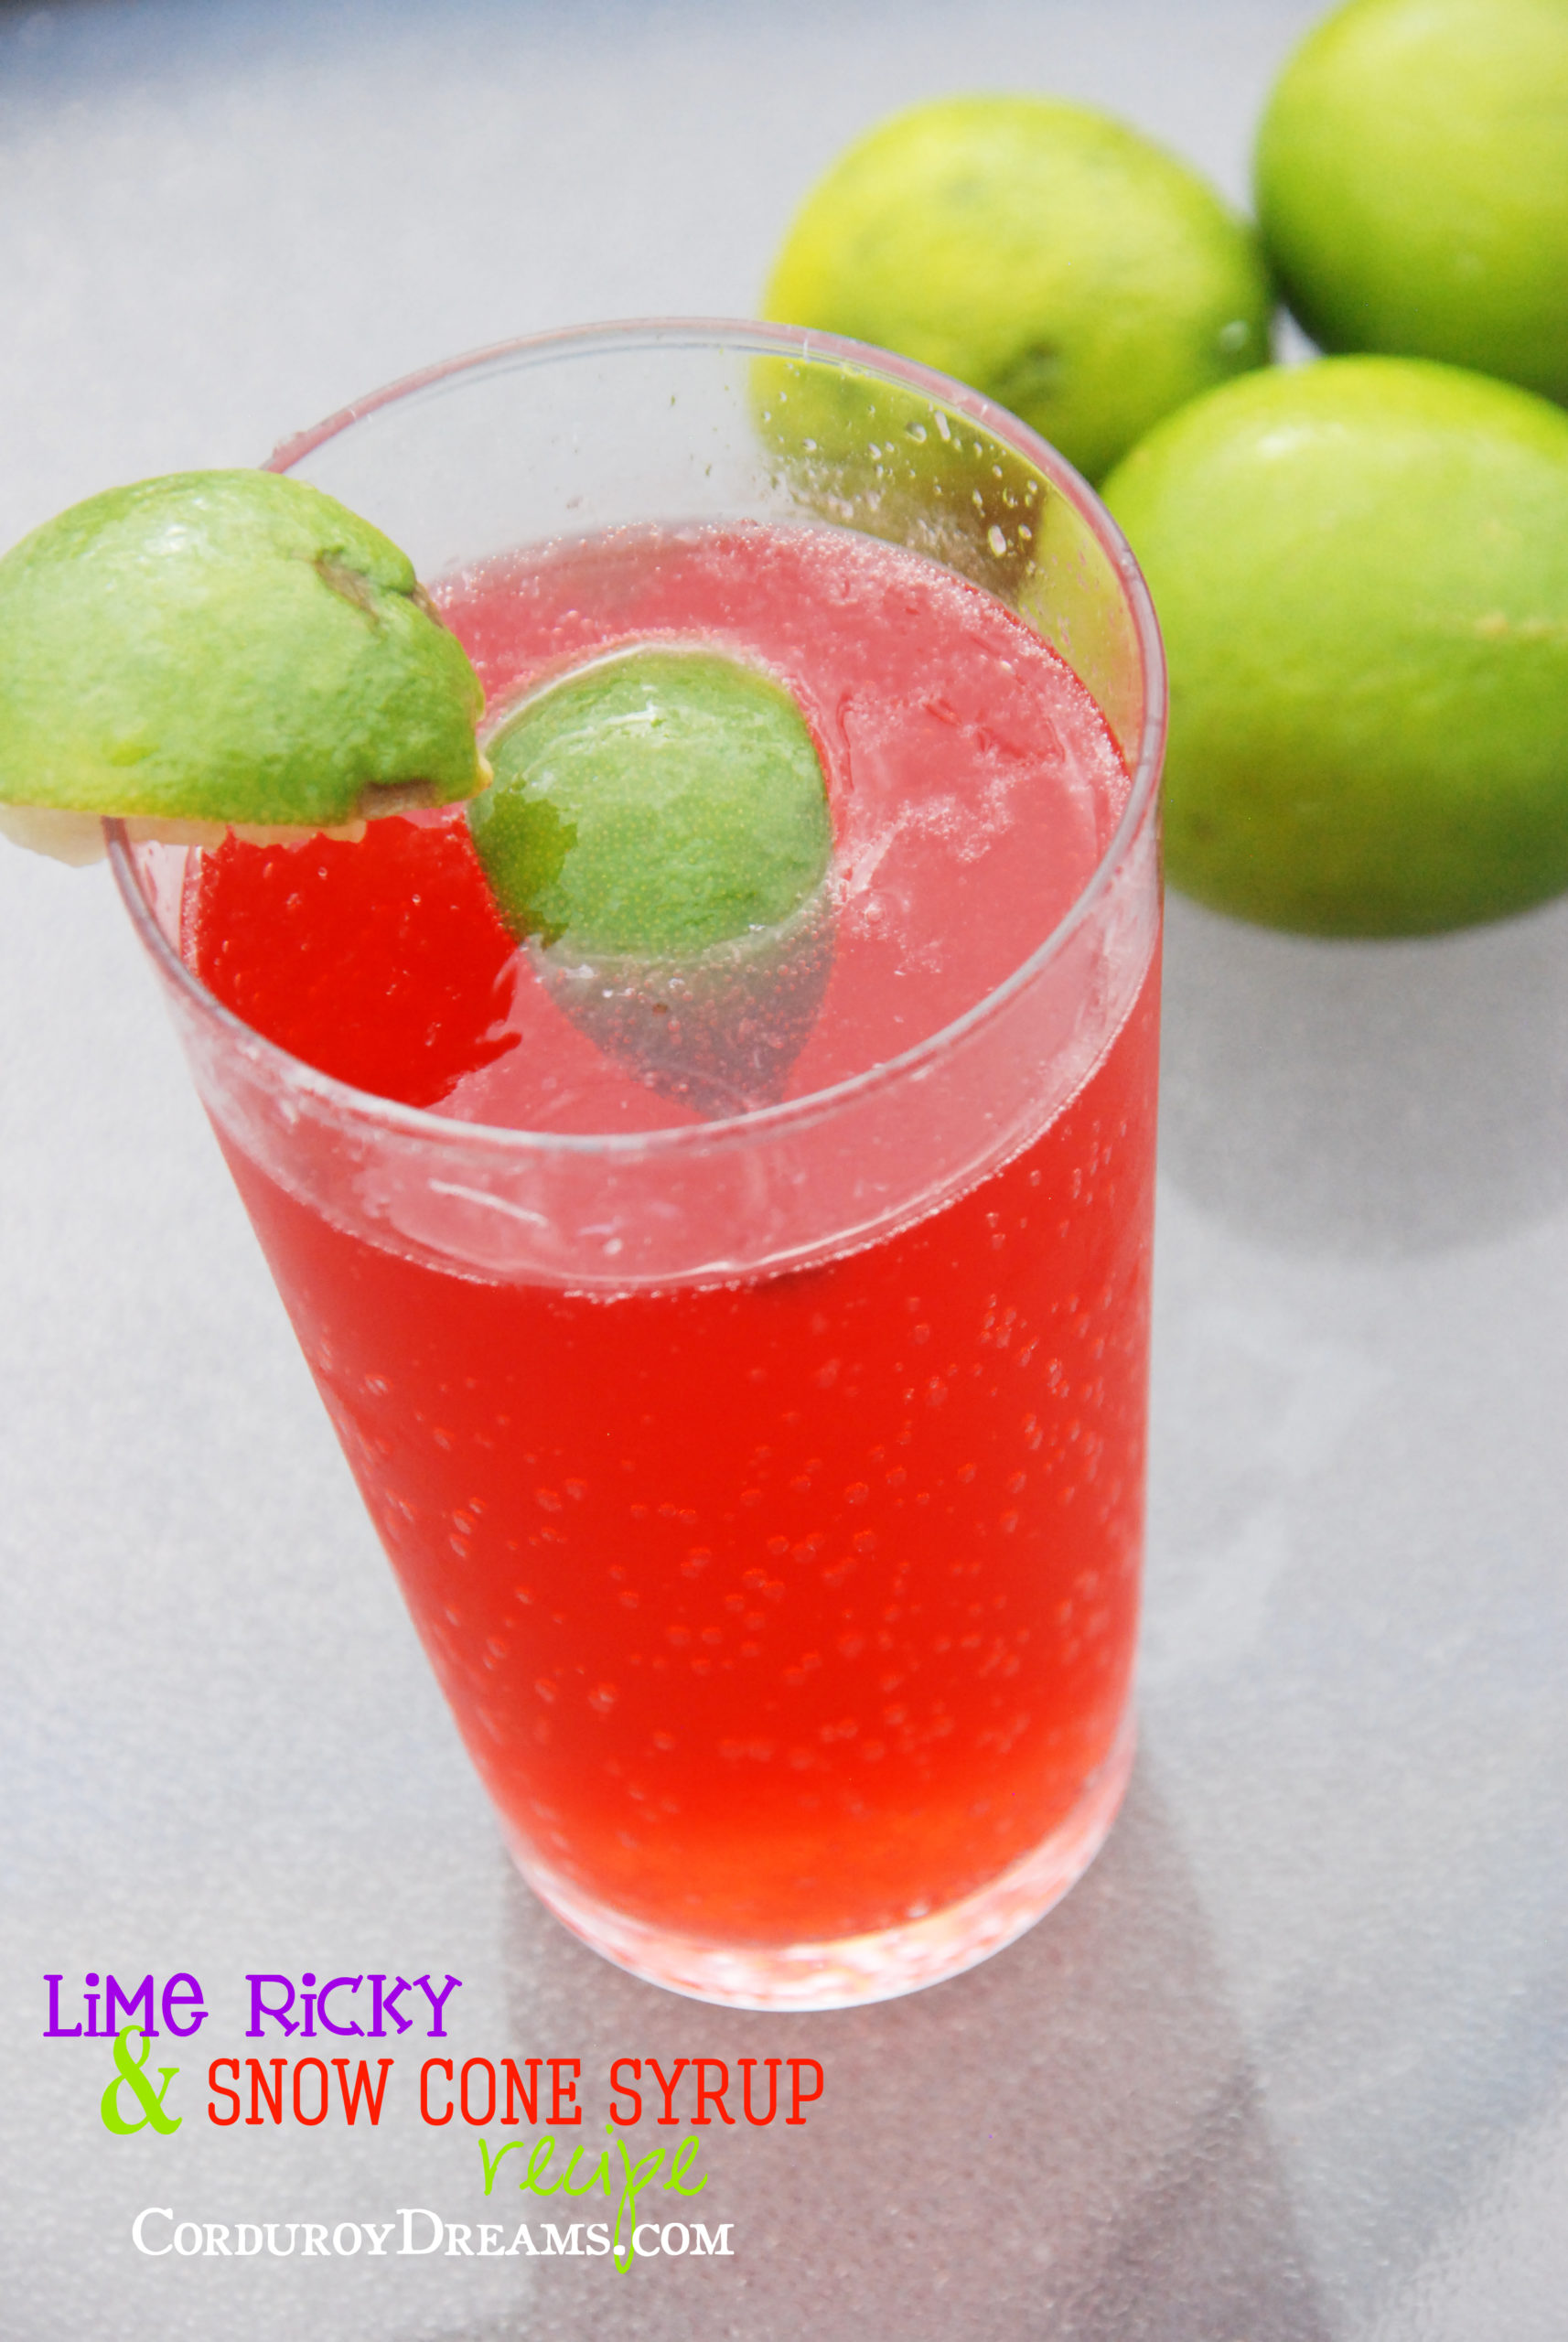 Lime Ricky & Snow Cone Syrup Recipe